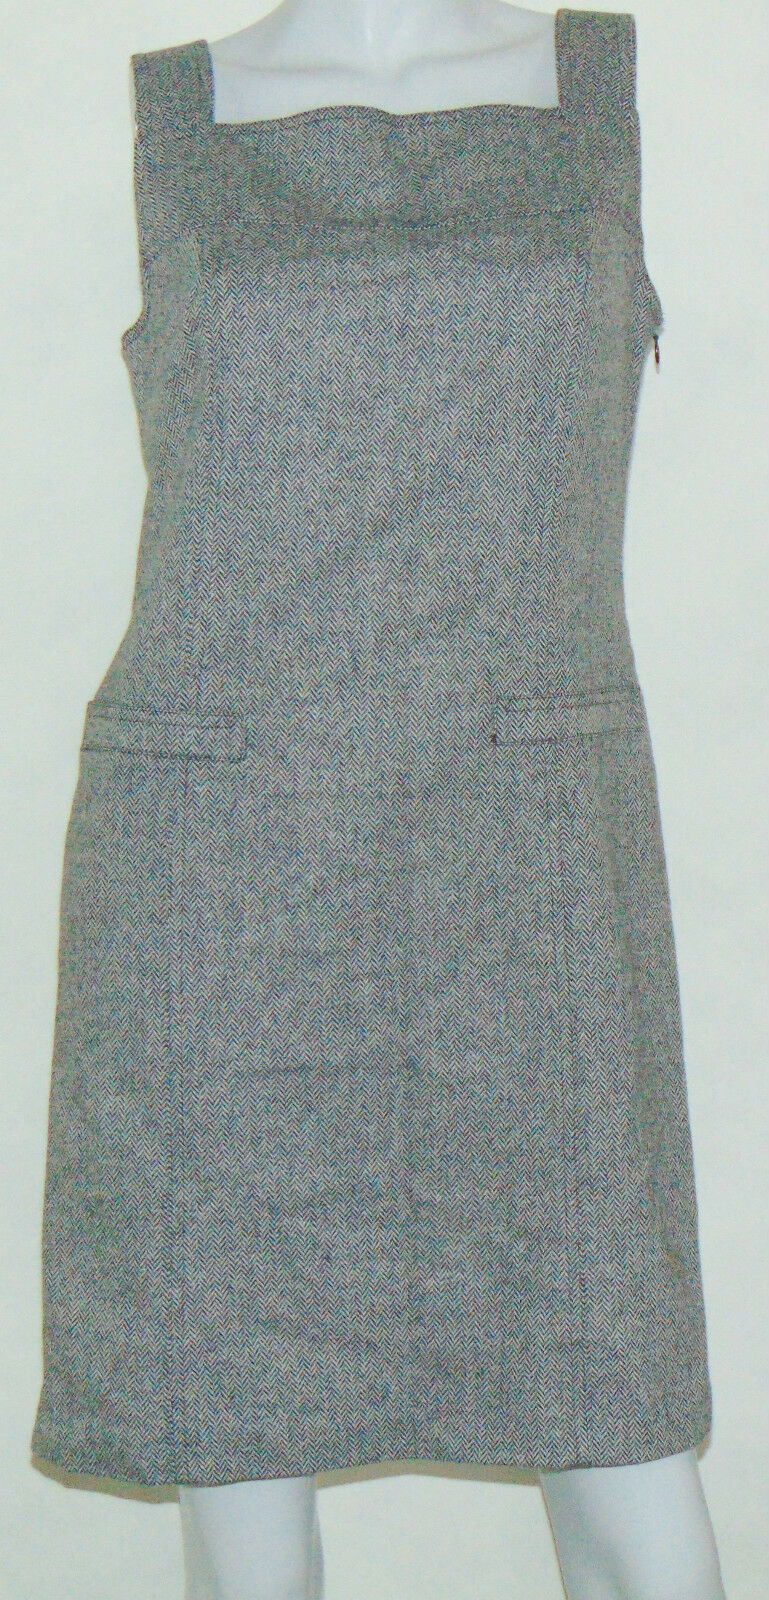 NWT Ann Taylor Loft Casual Sheath Dress 6 Wool Silk Sleeveless Herringbone Lined